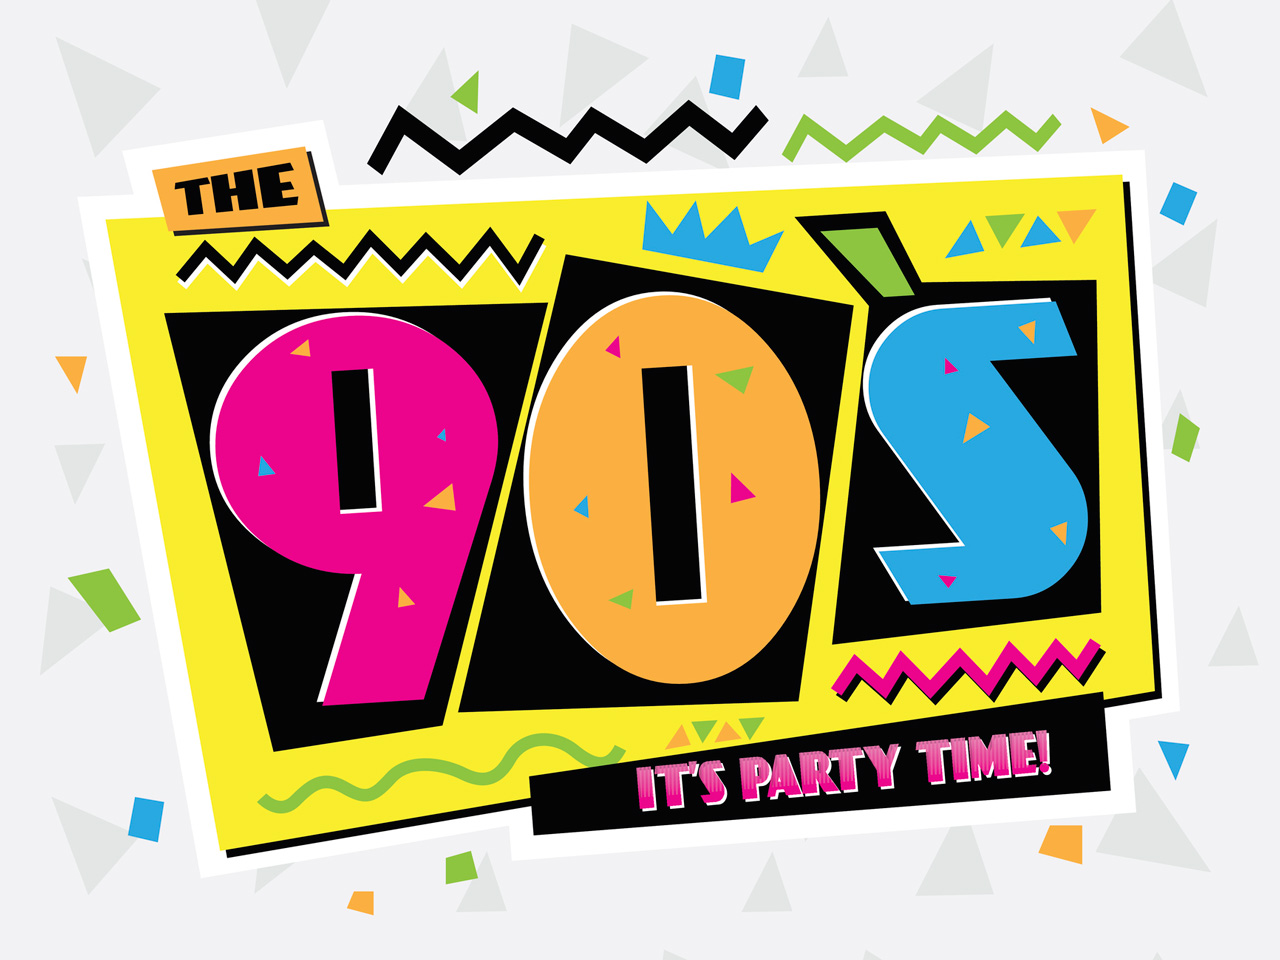 '90s-style lettering in bright colours that reads: The 90s it's party time!